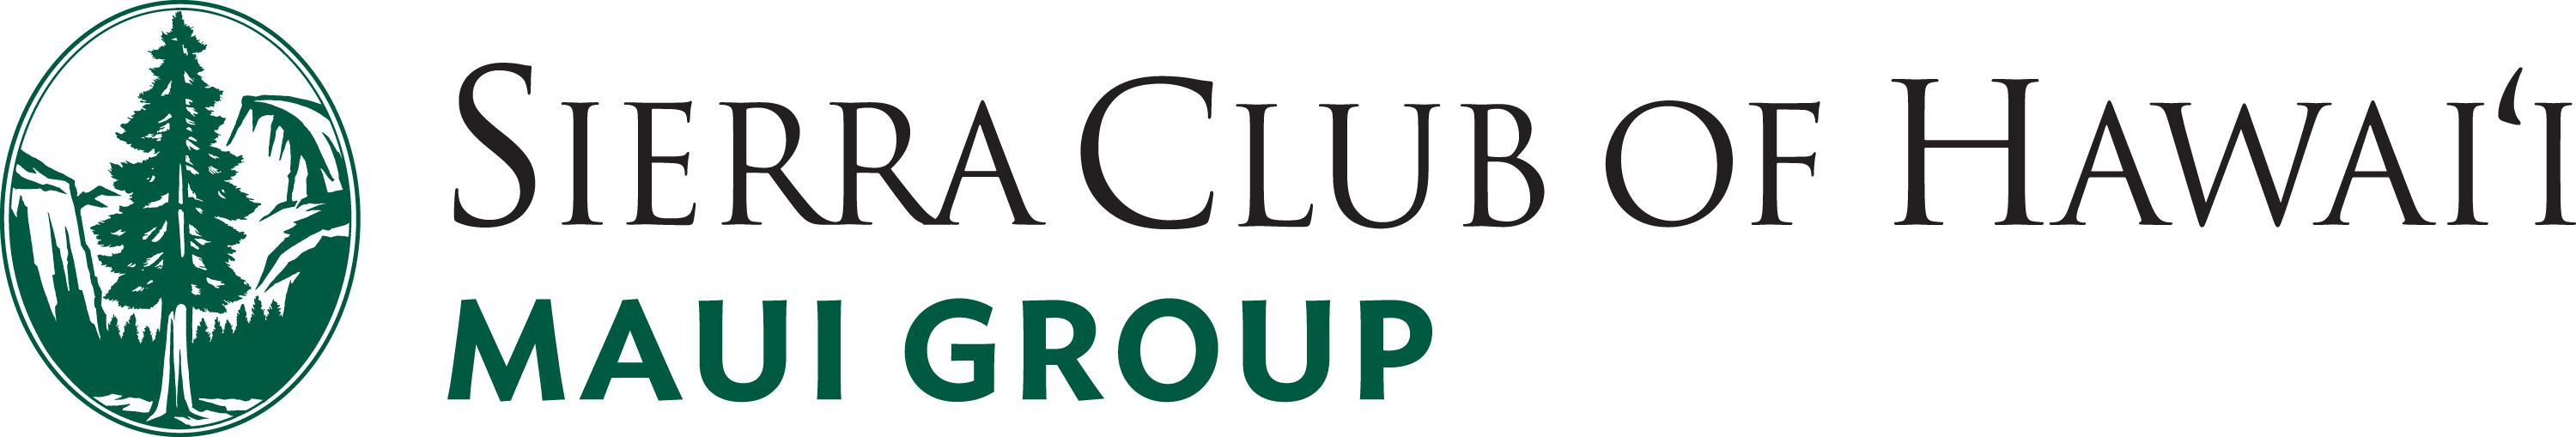 Sierra Club Maui Group